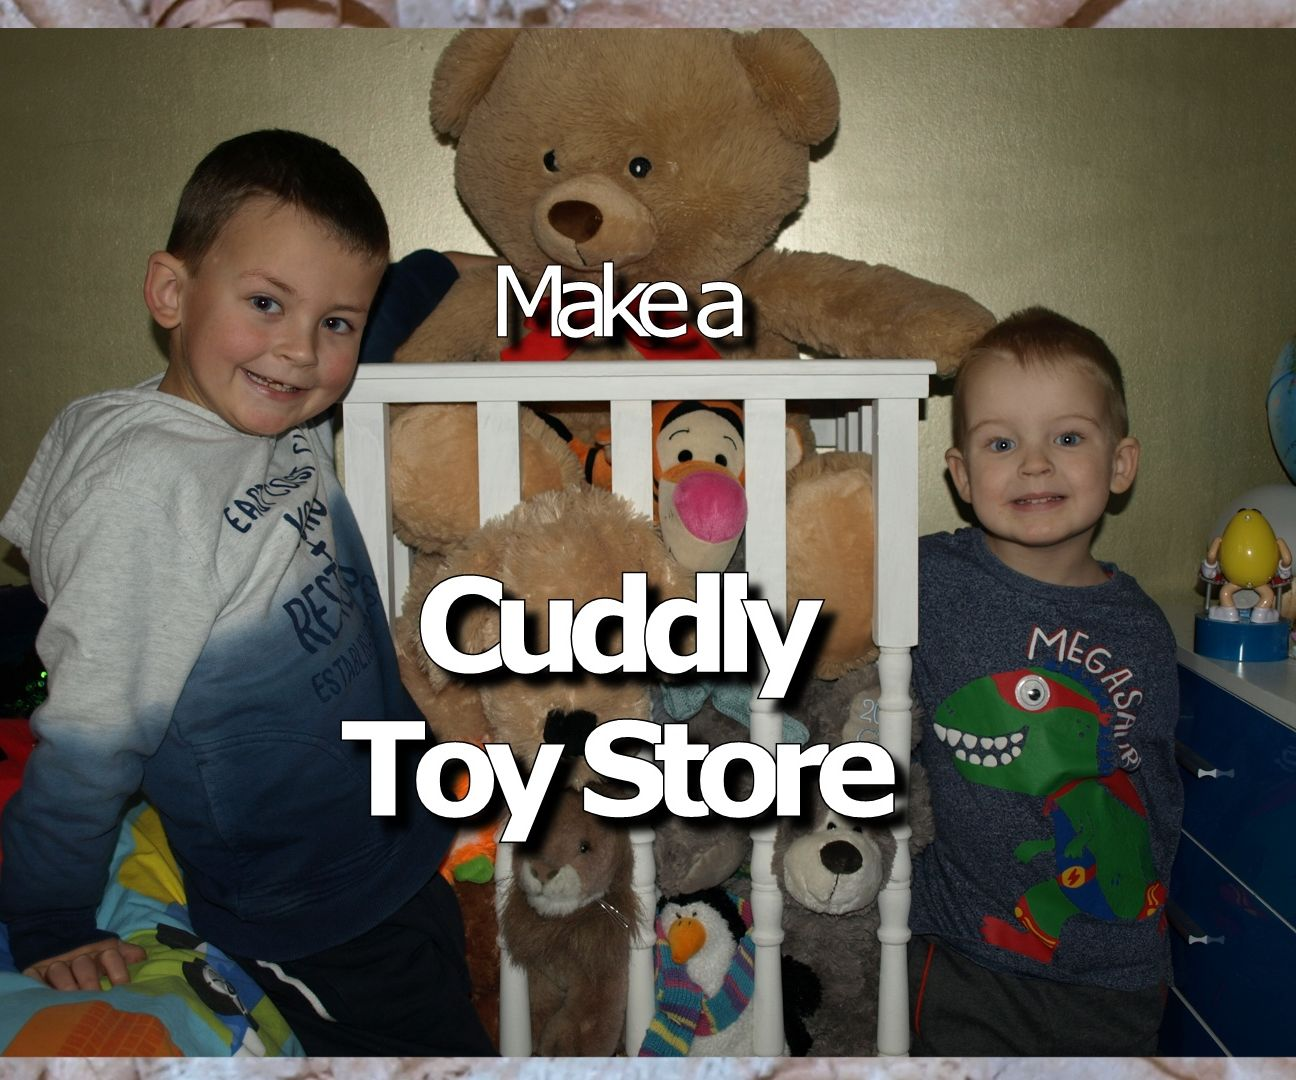 Make a Cuddly Toy Store